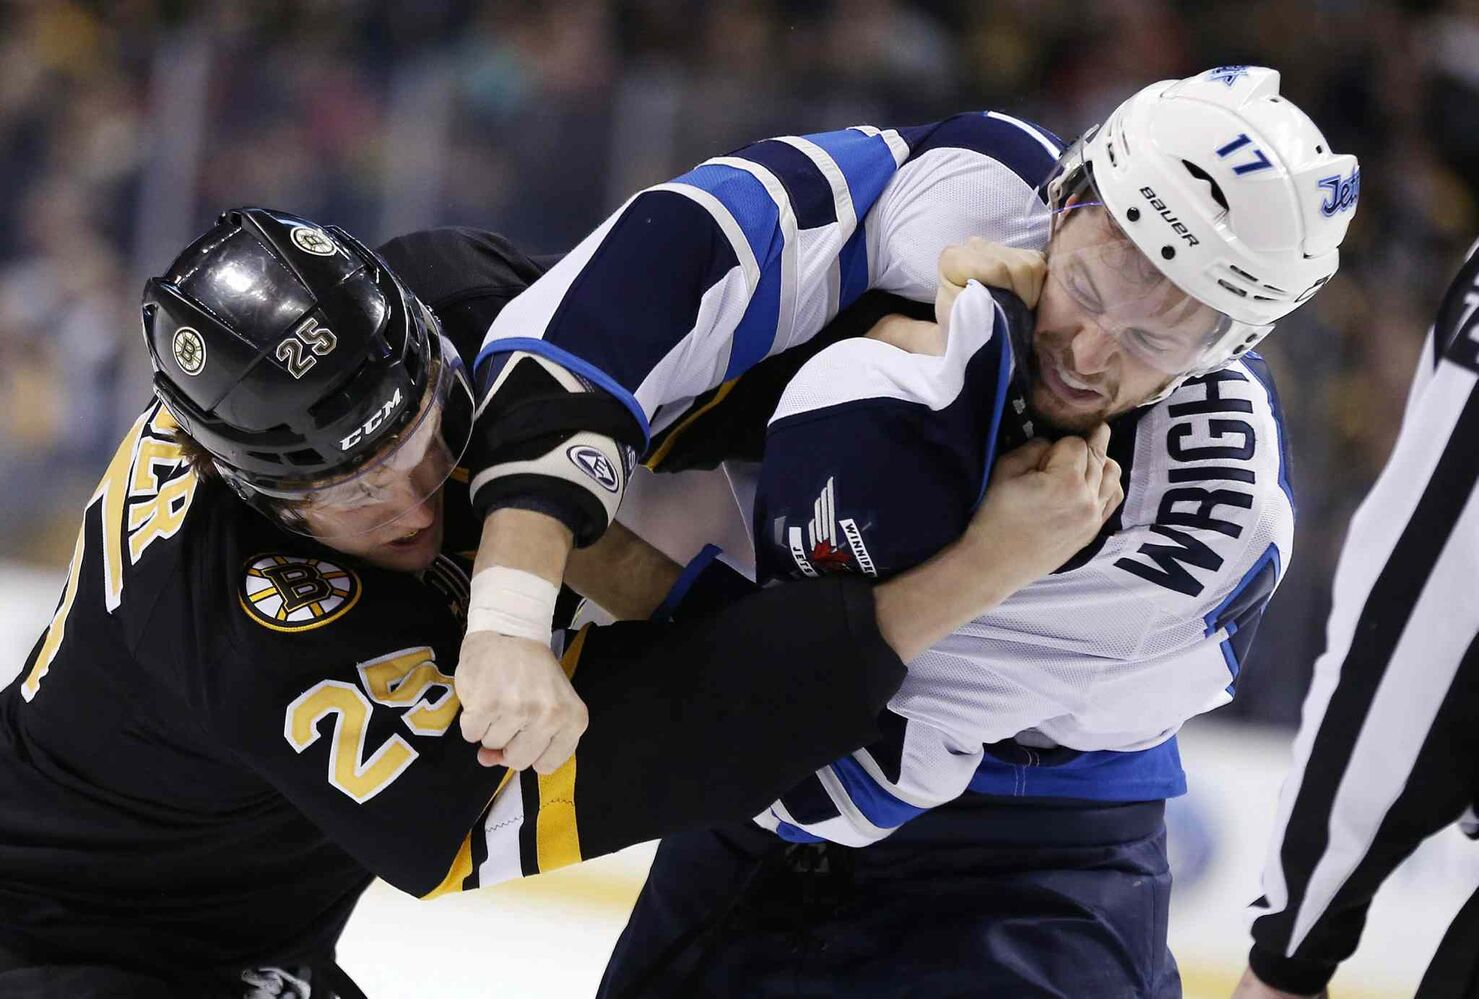 Boston Bruins' Matt Fraser (25) and Winnipeg Jets' James Wright (17) fight in the first period of an NHL hockey game in Boston Saturday. (Michael Dwyer / The Associated Press)